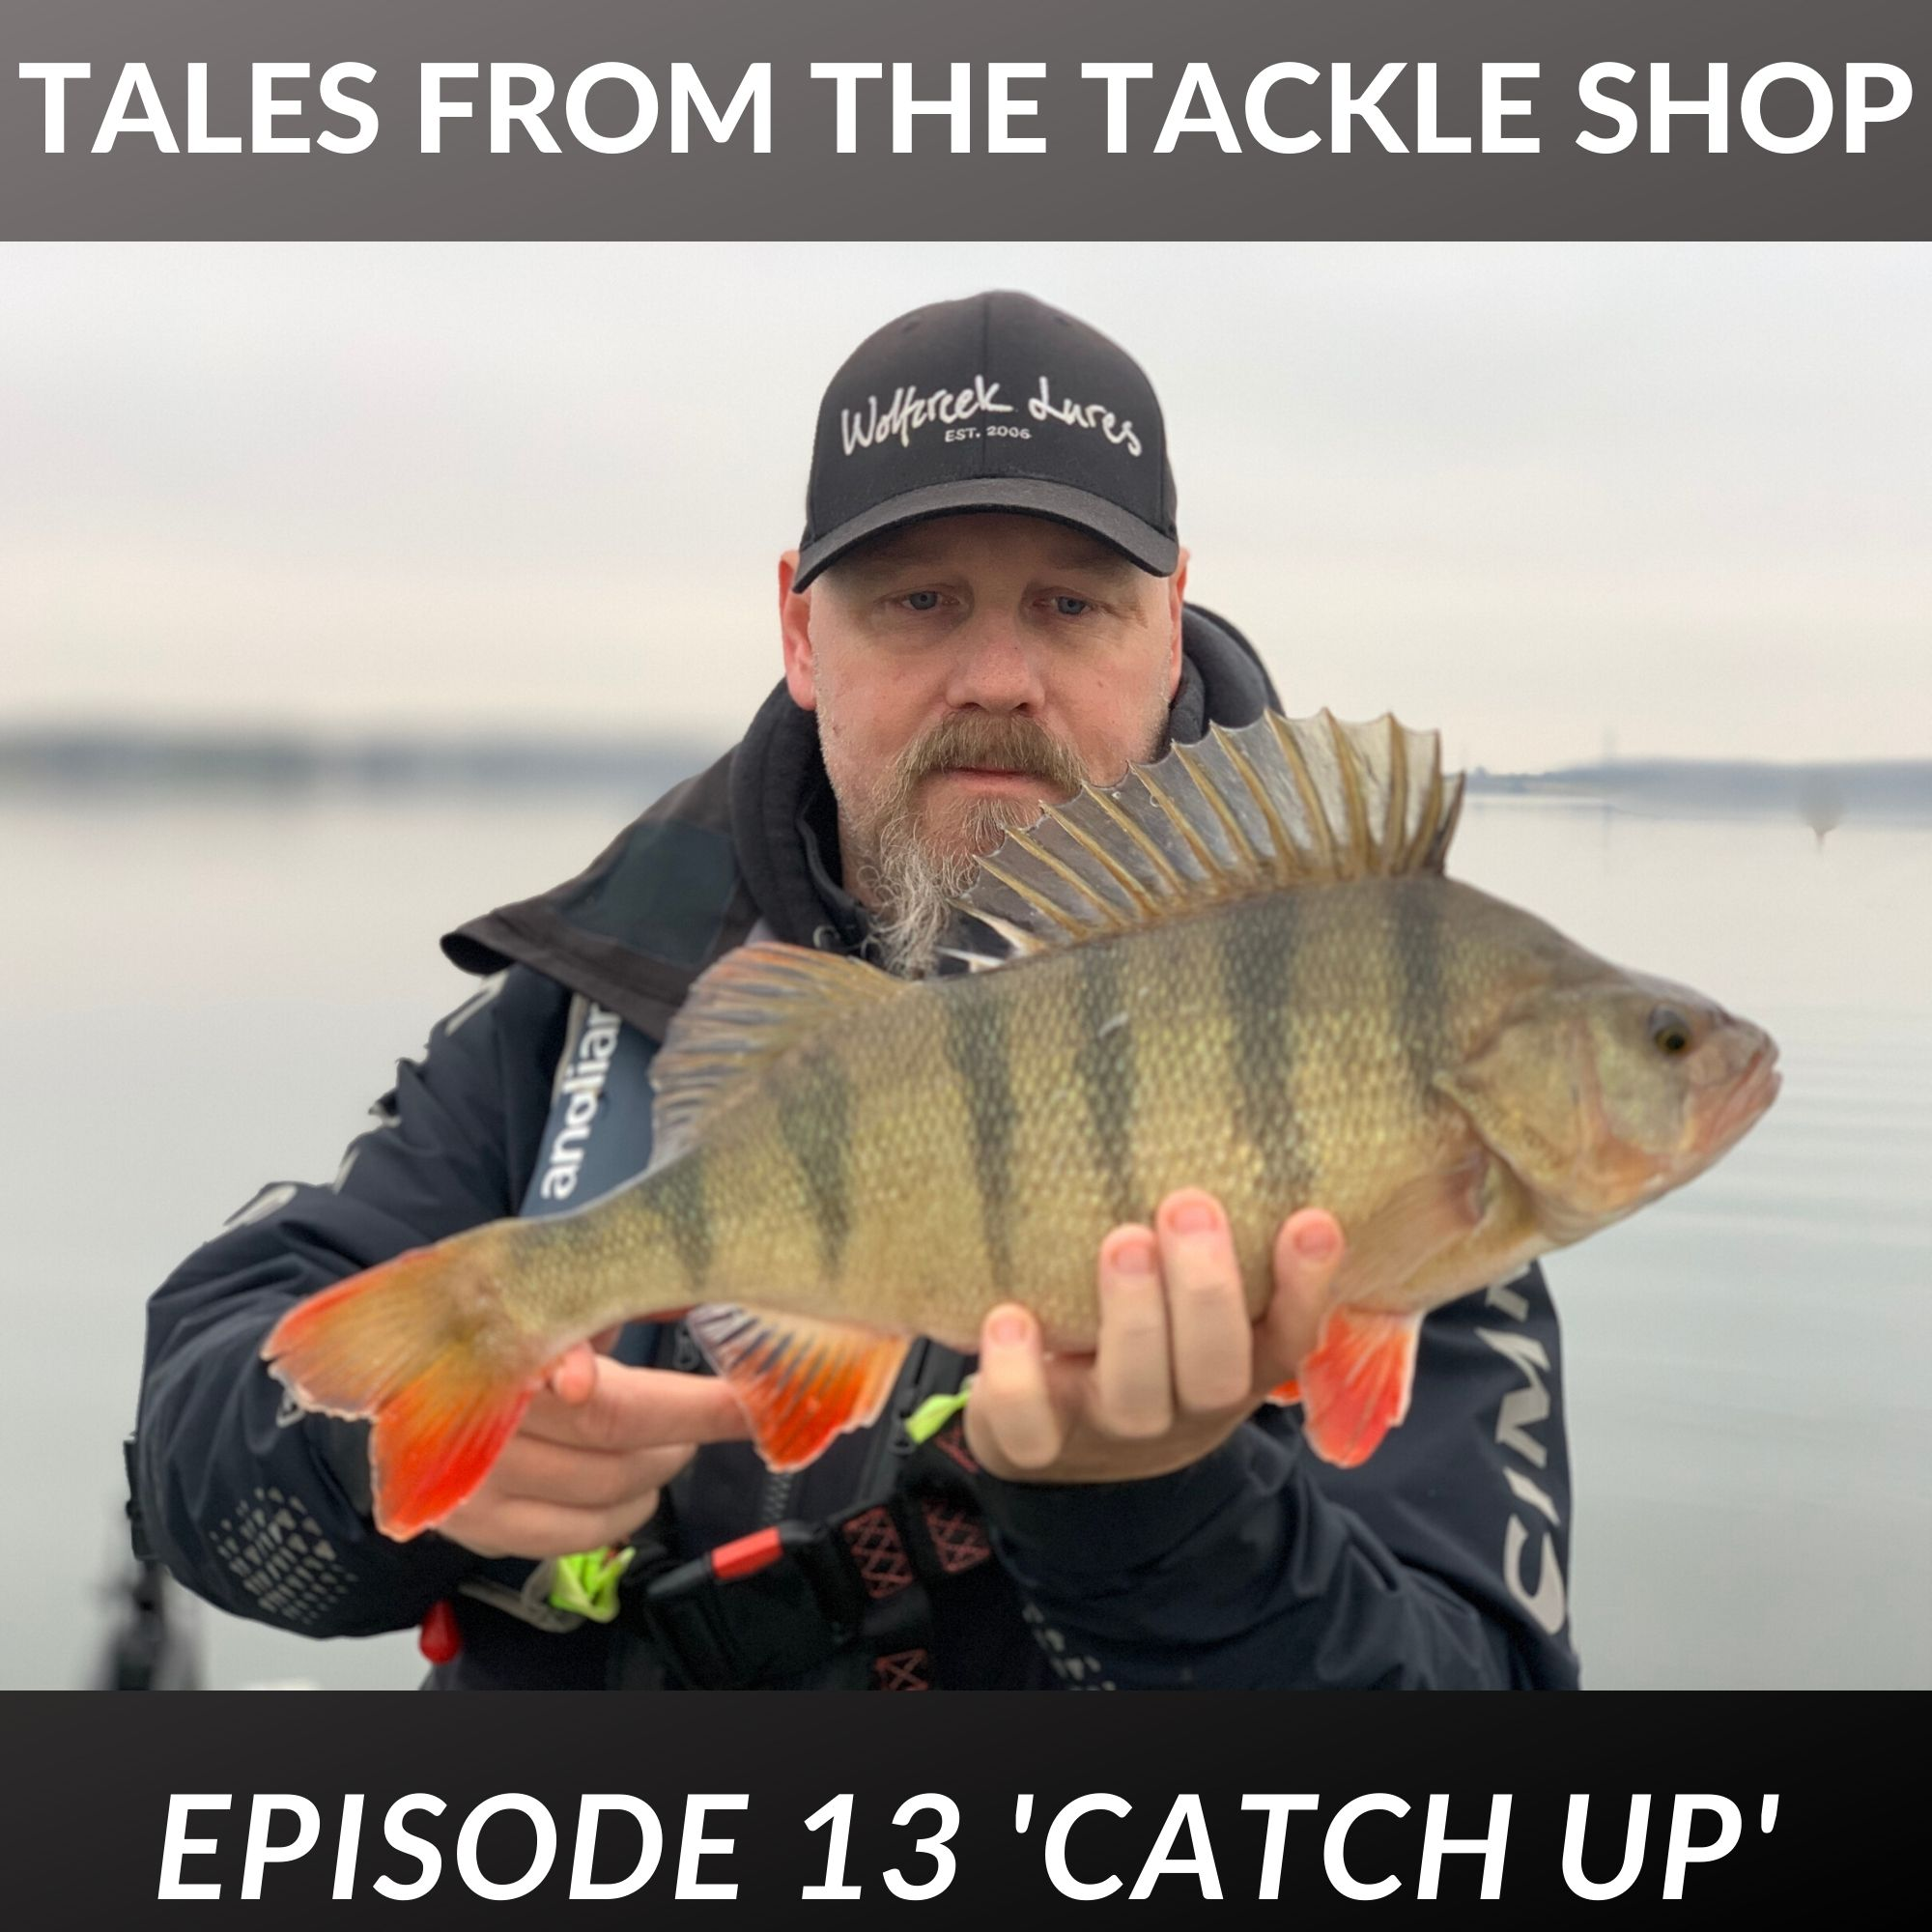 Episode 13, 'Catch Up'